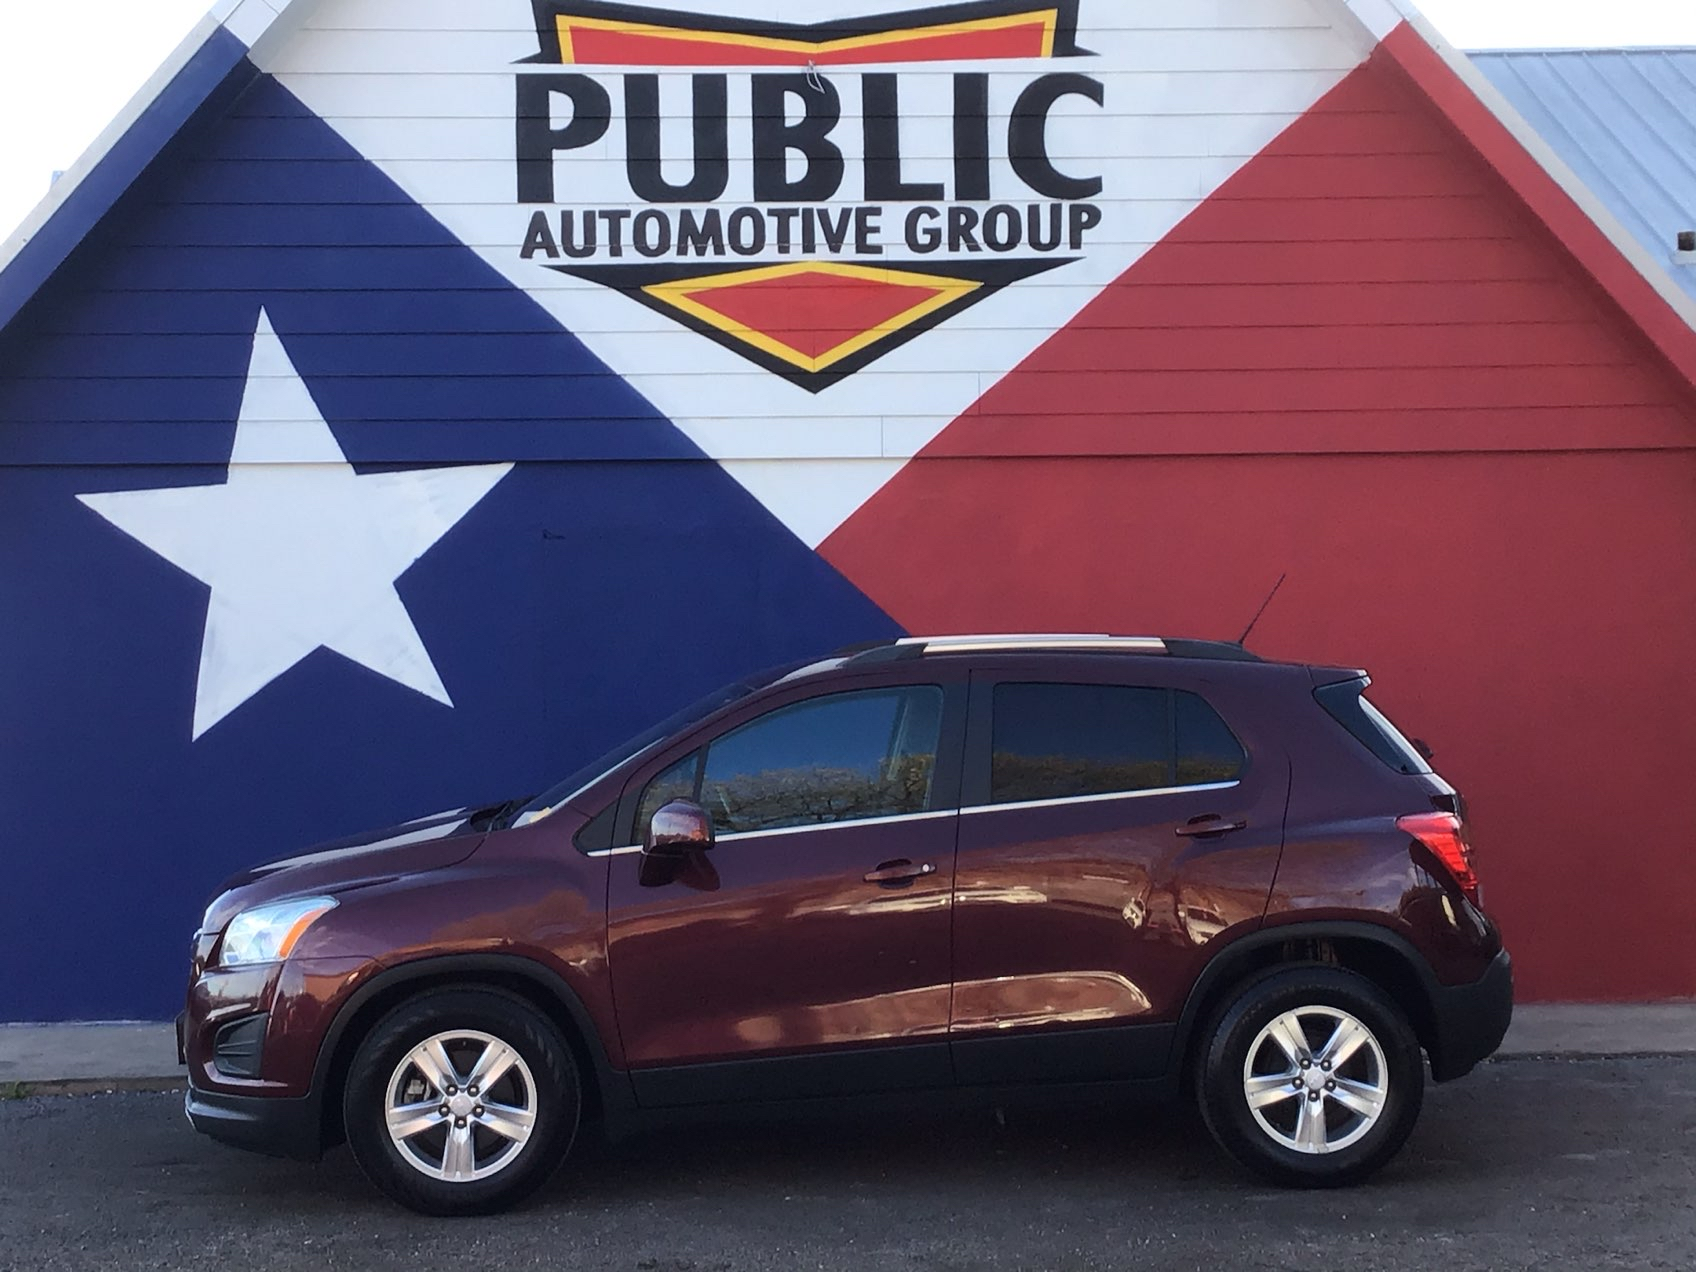 used vehicle - SUV CHEVROLET TRAX 2016